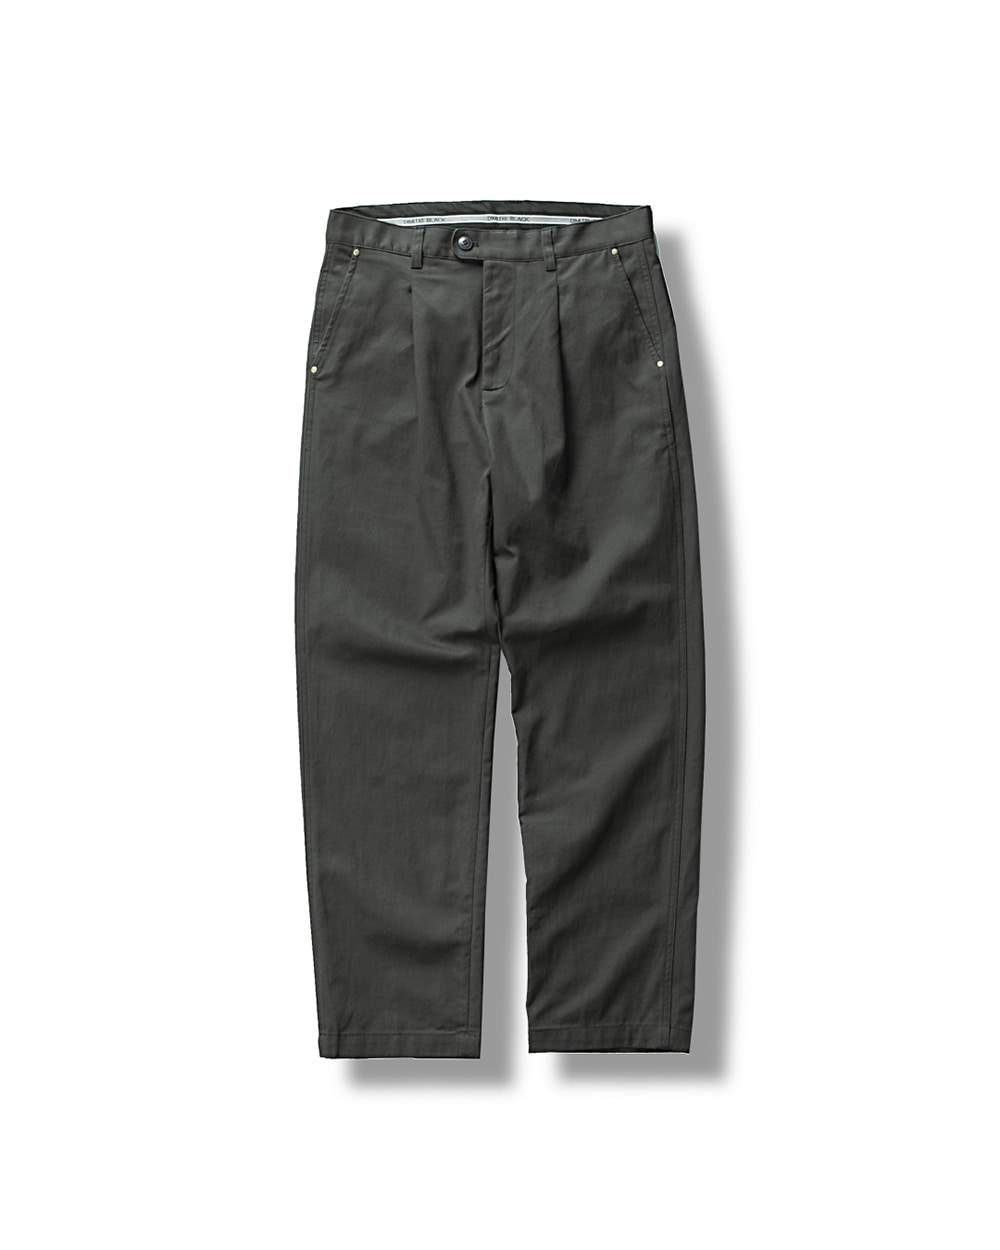 ALL SEASON RIVET PANTS CHARCOAL